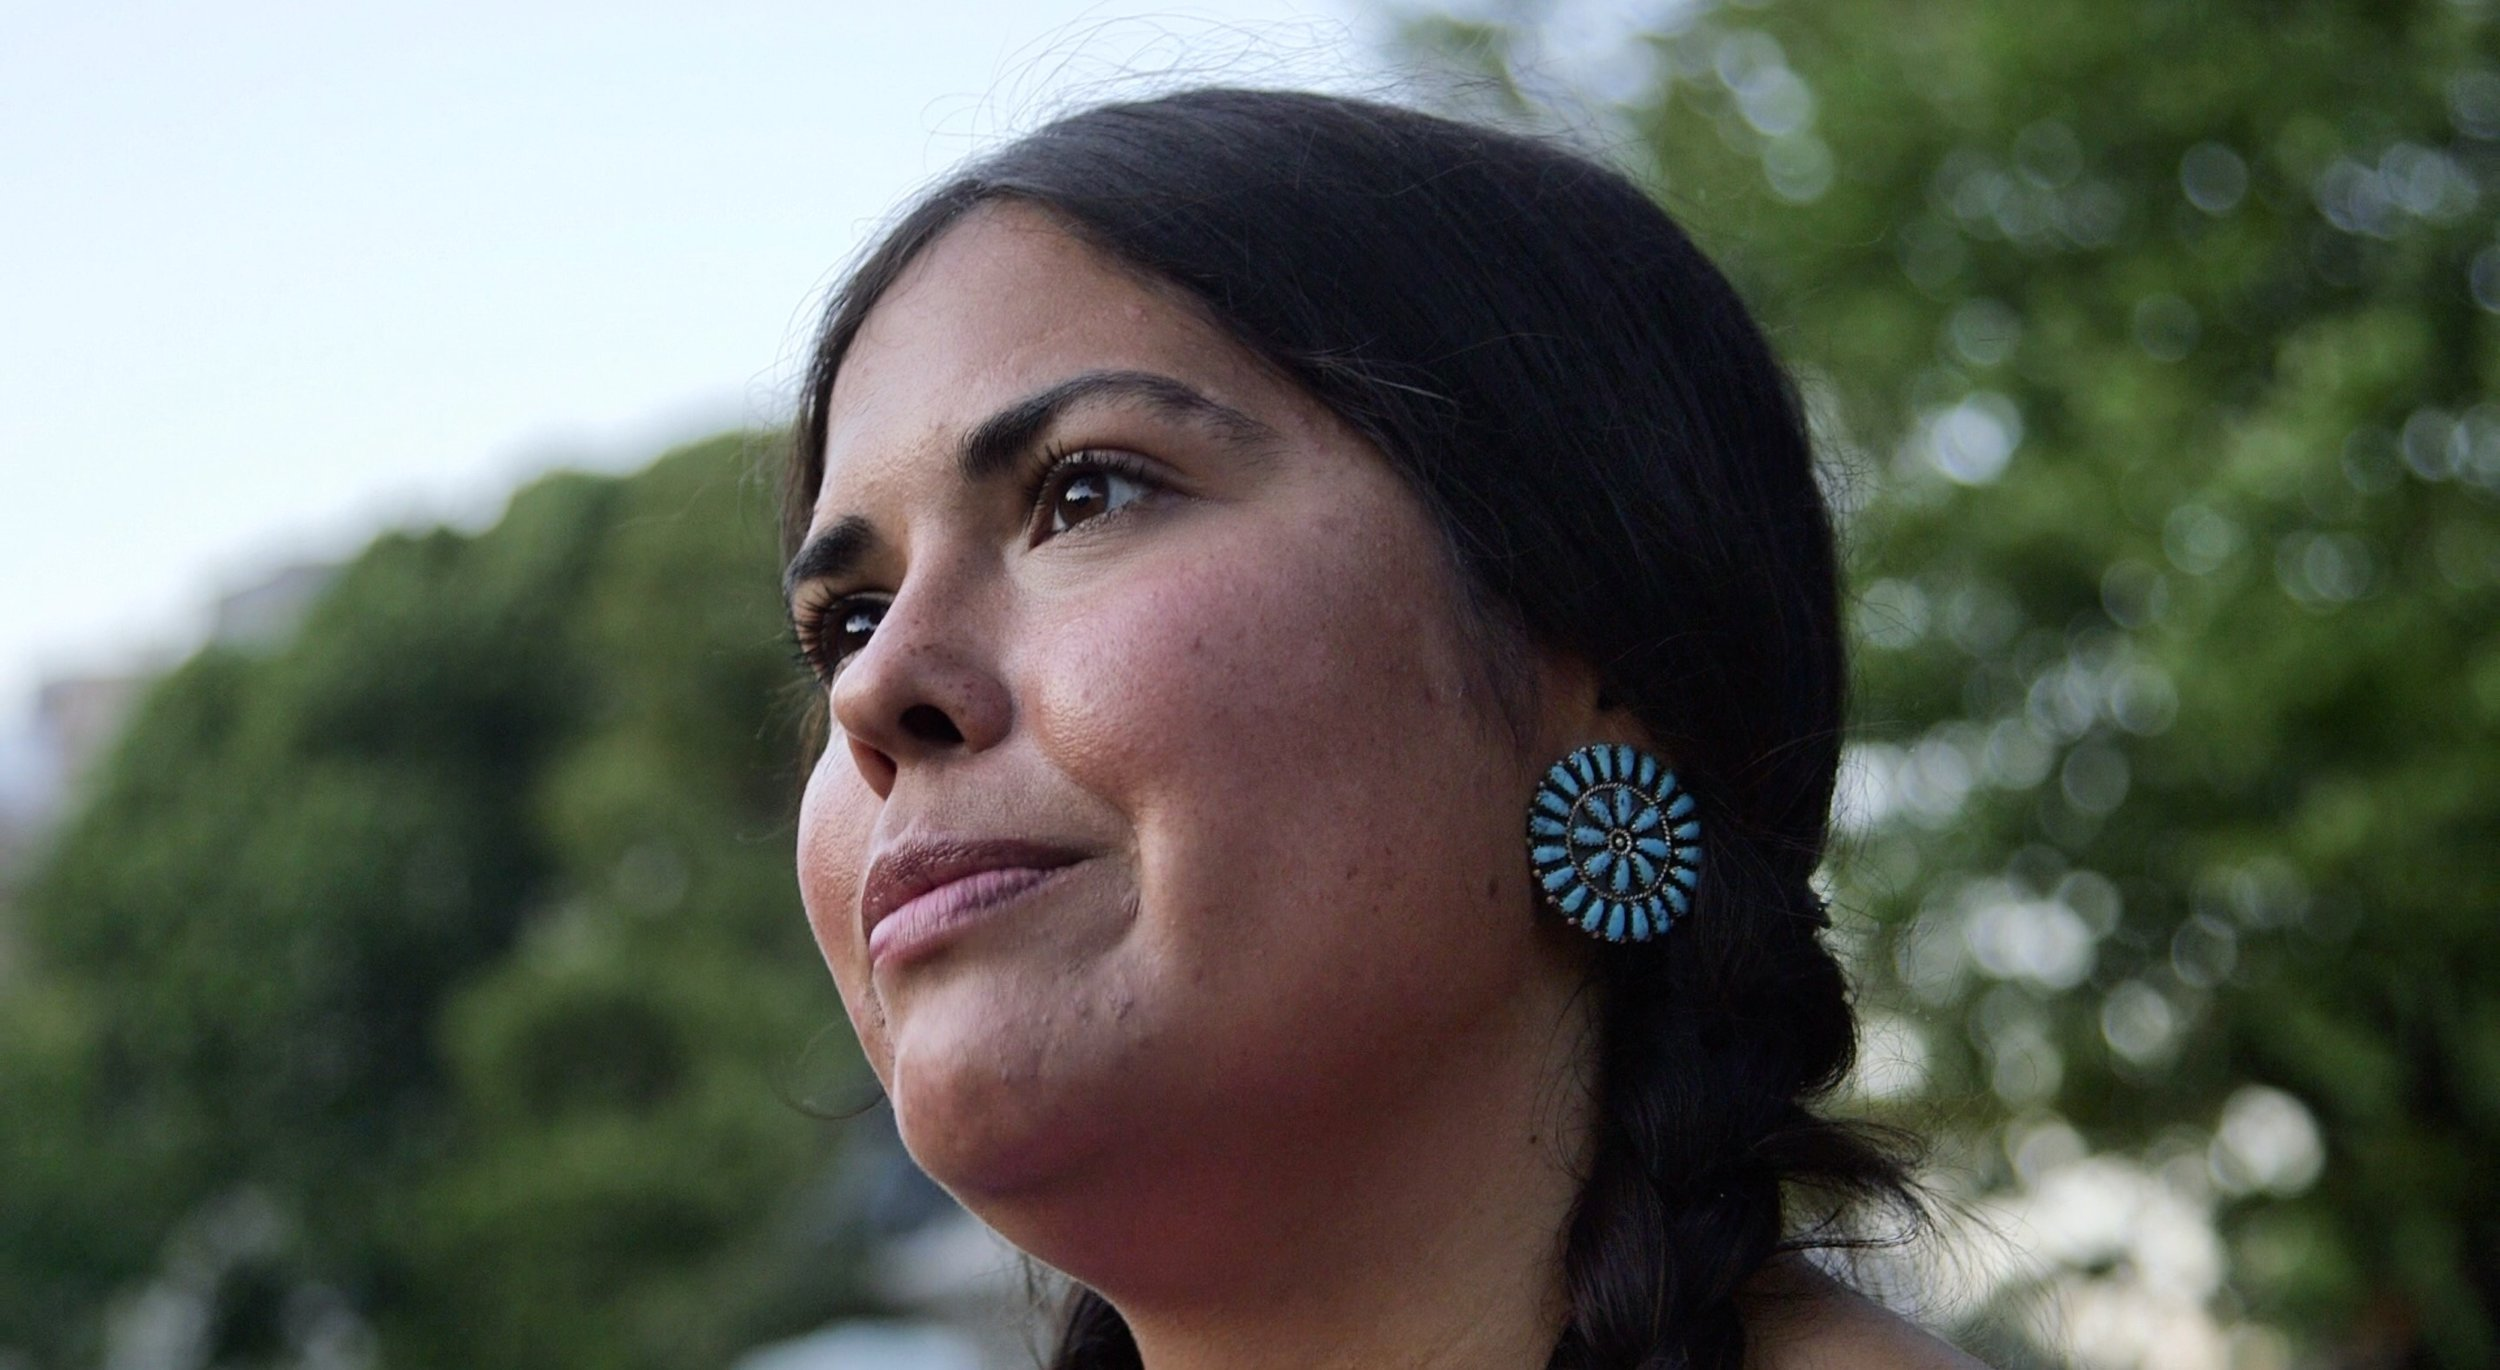 NBC  Latino,  Humanizing America : Standing Rock I shot and produced this video for The Futuro Media Group and NBC Latino with journalist Maria Hinojosa and tribal rights attorney and Bernie Sander's advisor Tara Houska.